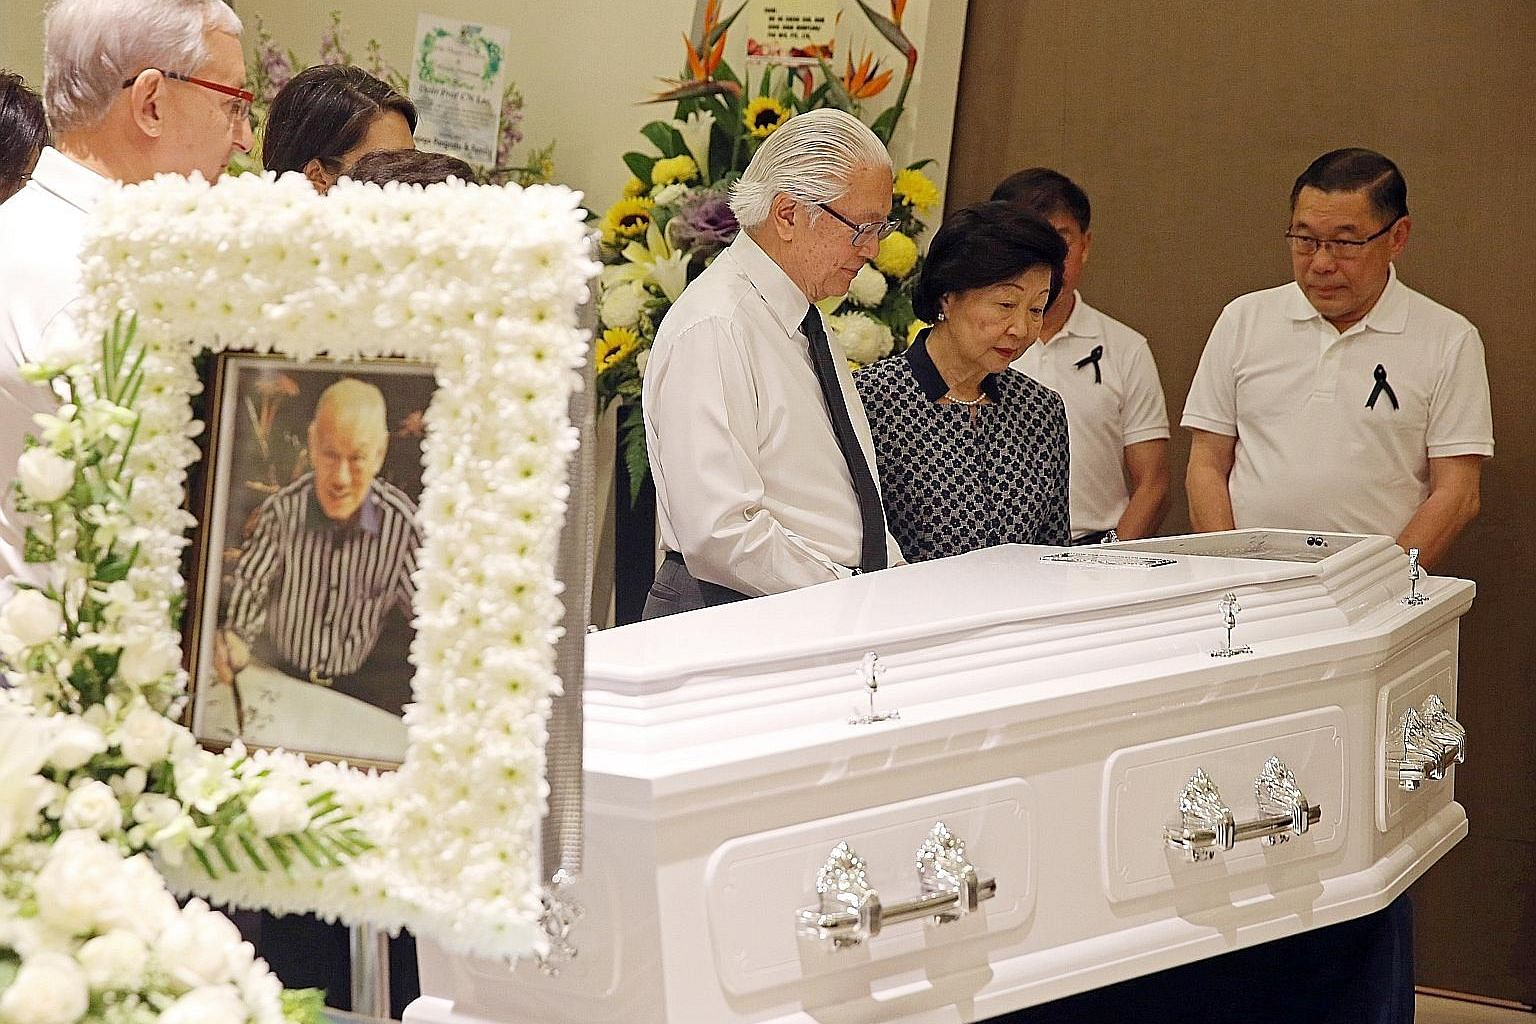 President Tony Tan and Mrs Tan, accompanied by the sons of the late Mr Lee Khoon Choy - Chuen Neng (right) and Chuen Fei (second from right, partially hidden) - at the wake.